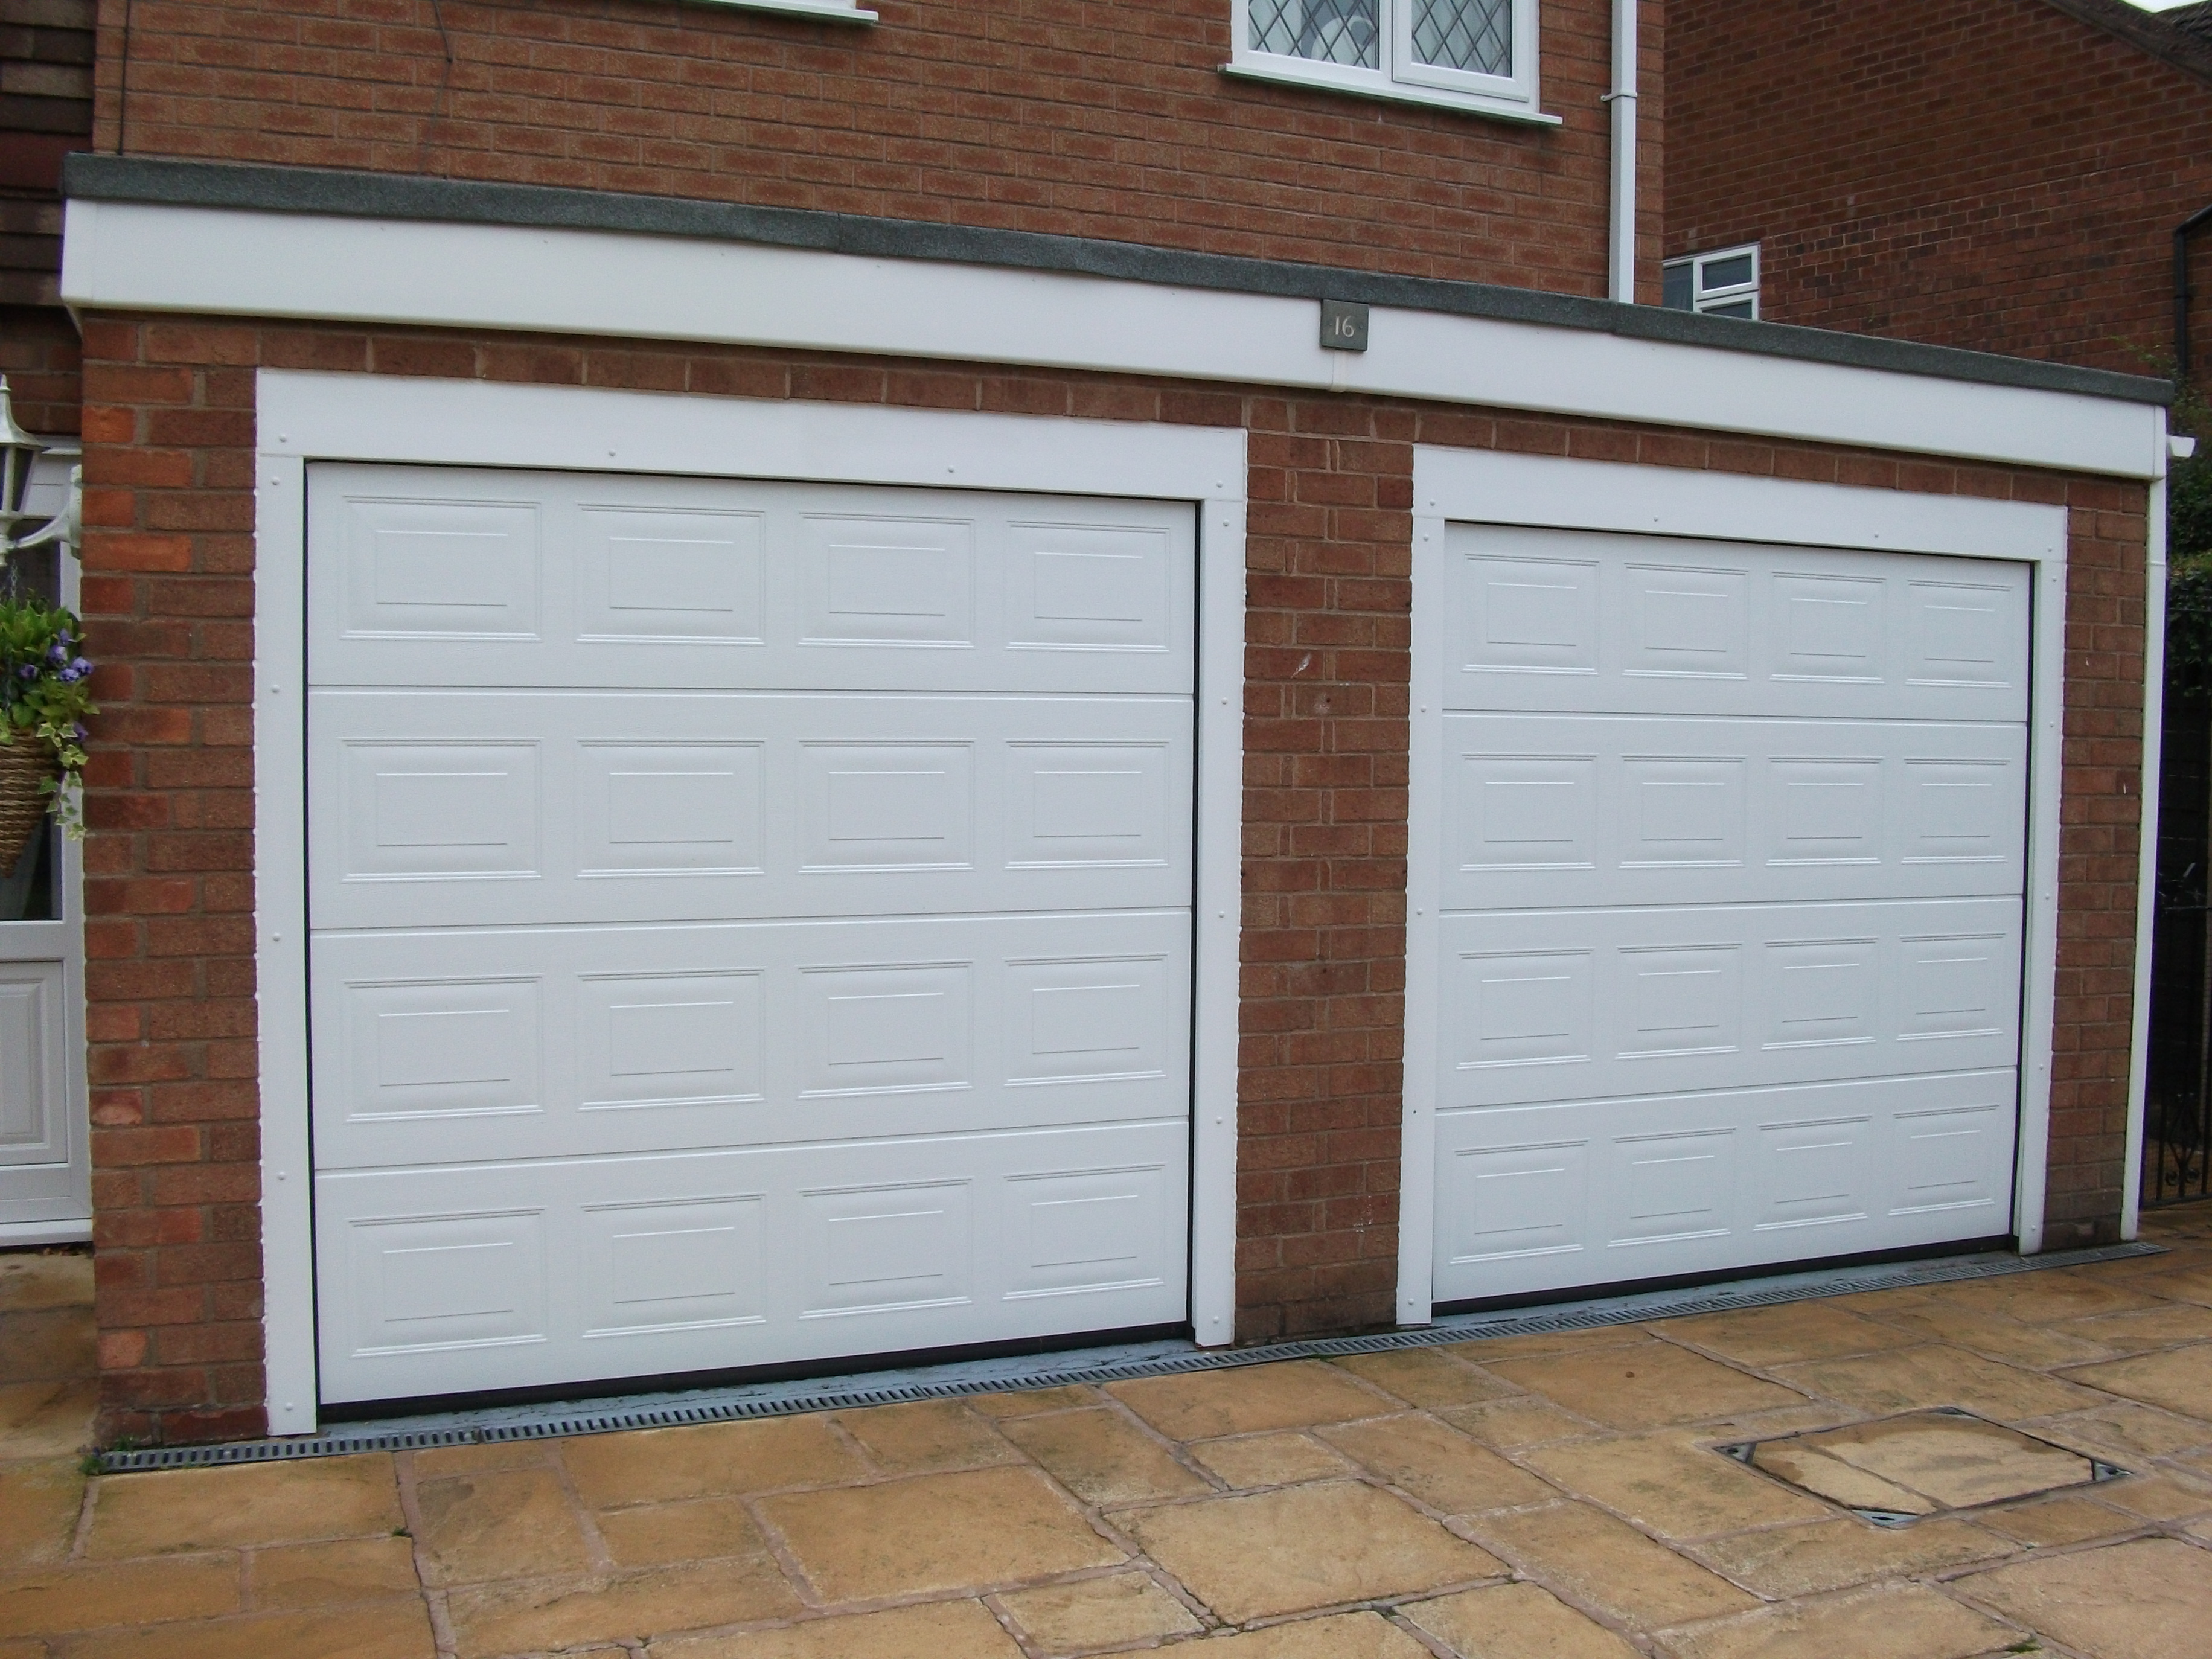 Insulated garage door cost garage doors with man door for 12 x 12 insulated garage door